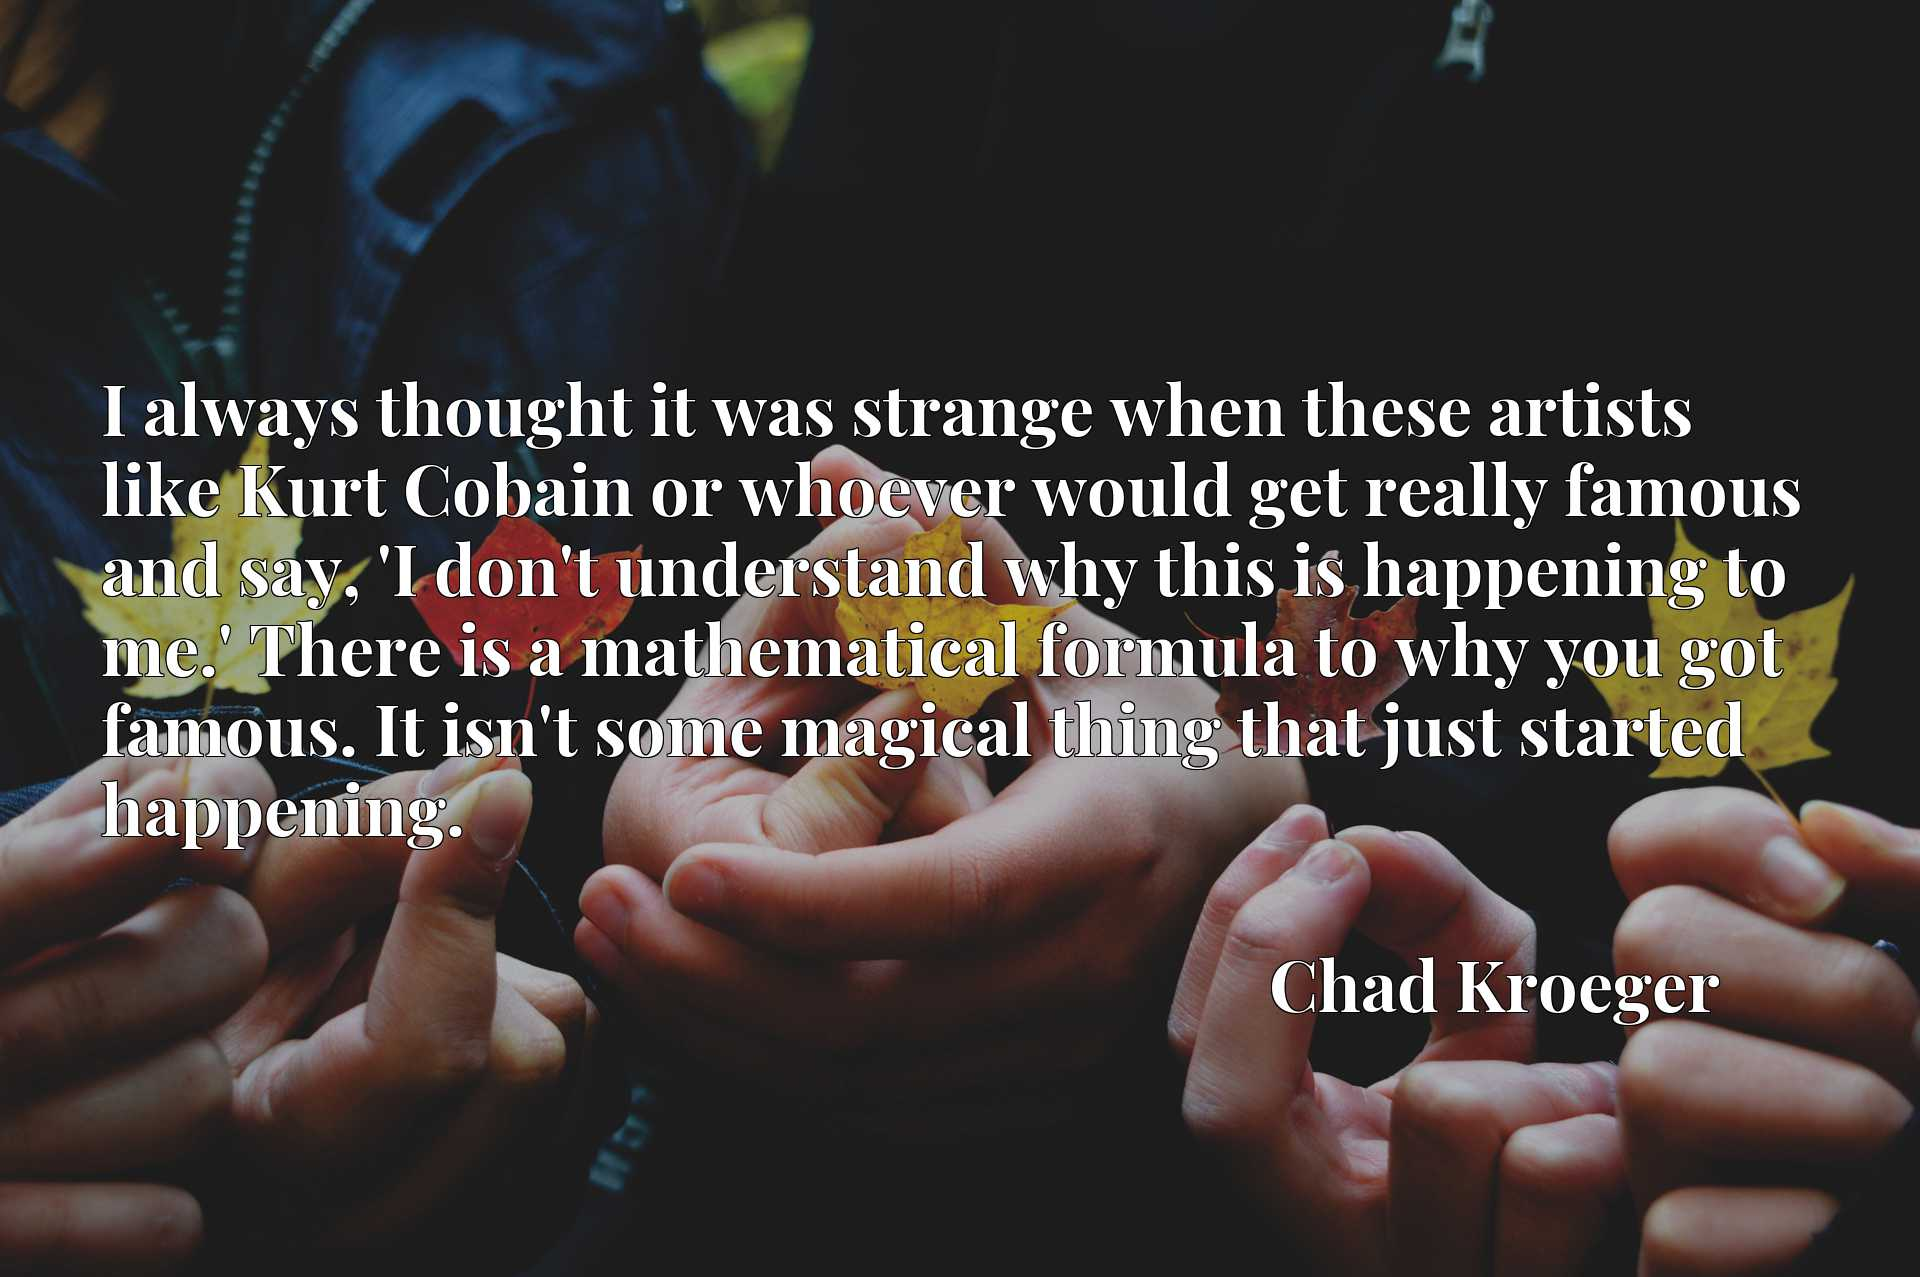 I always thought it was strange when these artists like Kurt Cobain or whoever would get really famous and say, 'I don't understand why this is happening to me.' There is a mathematical formula to why you got famous. It isn't some magical thing that just started happening.